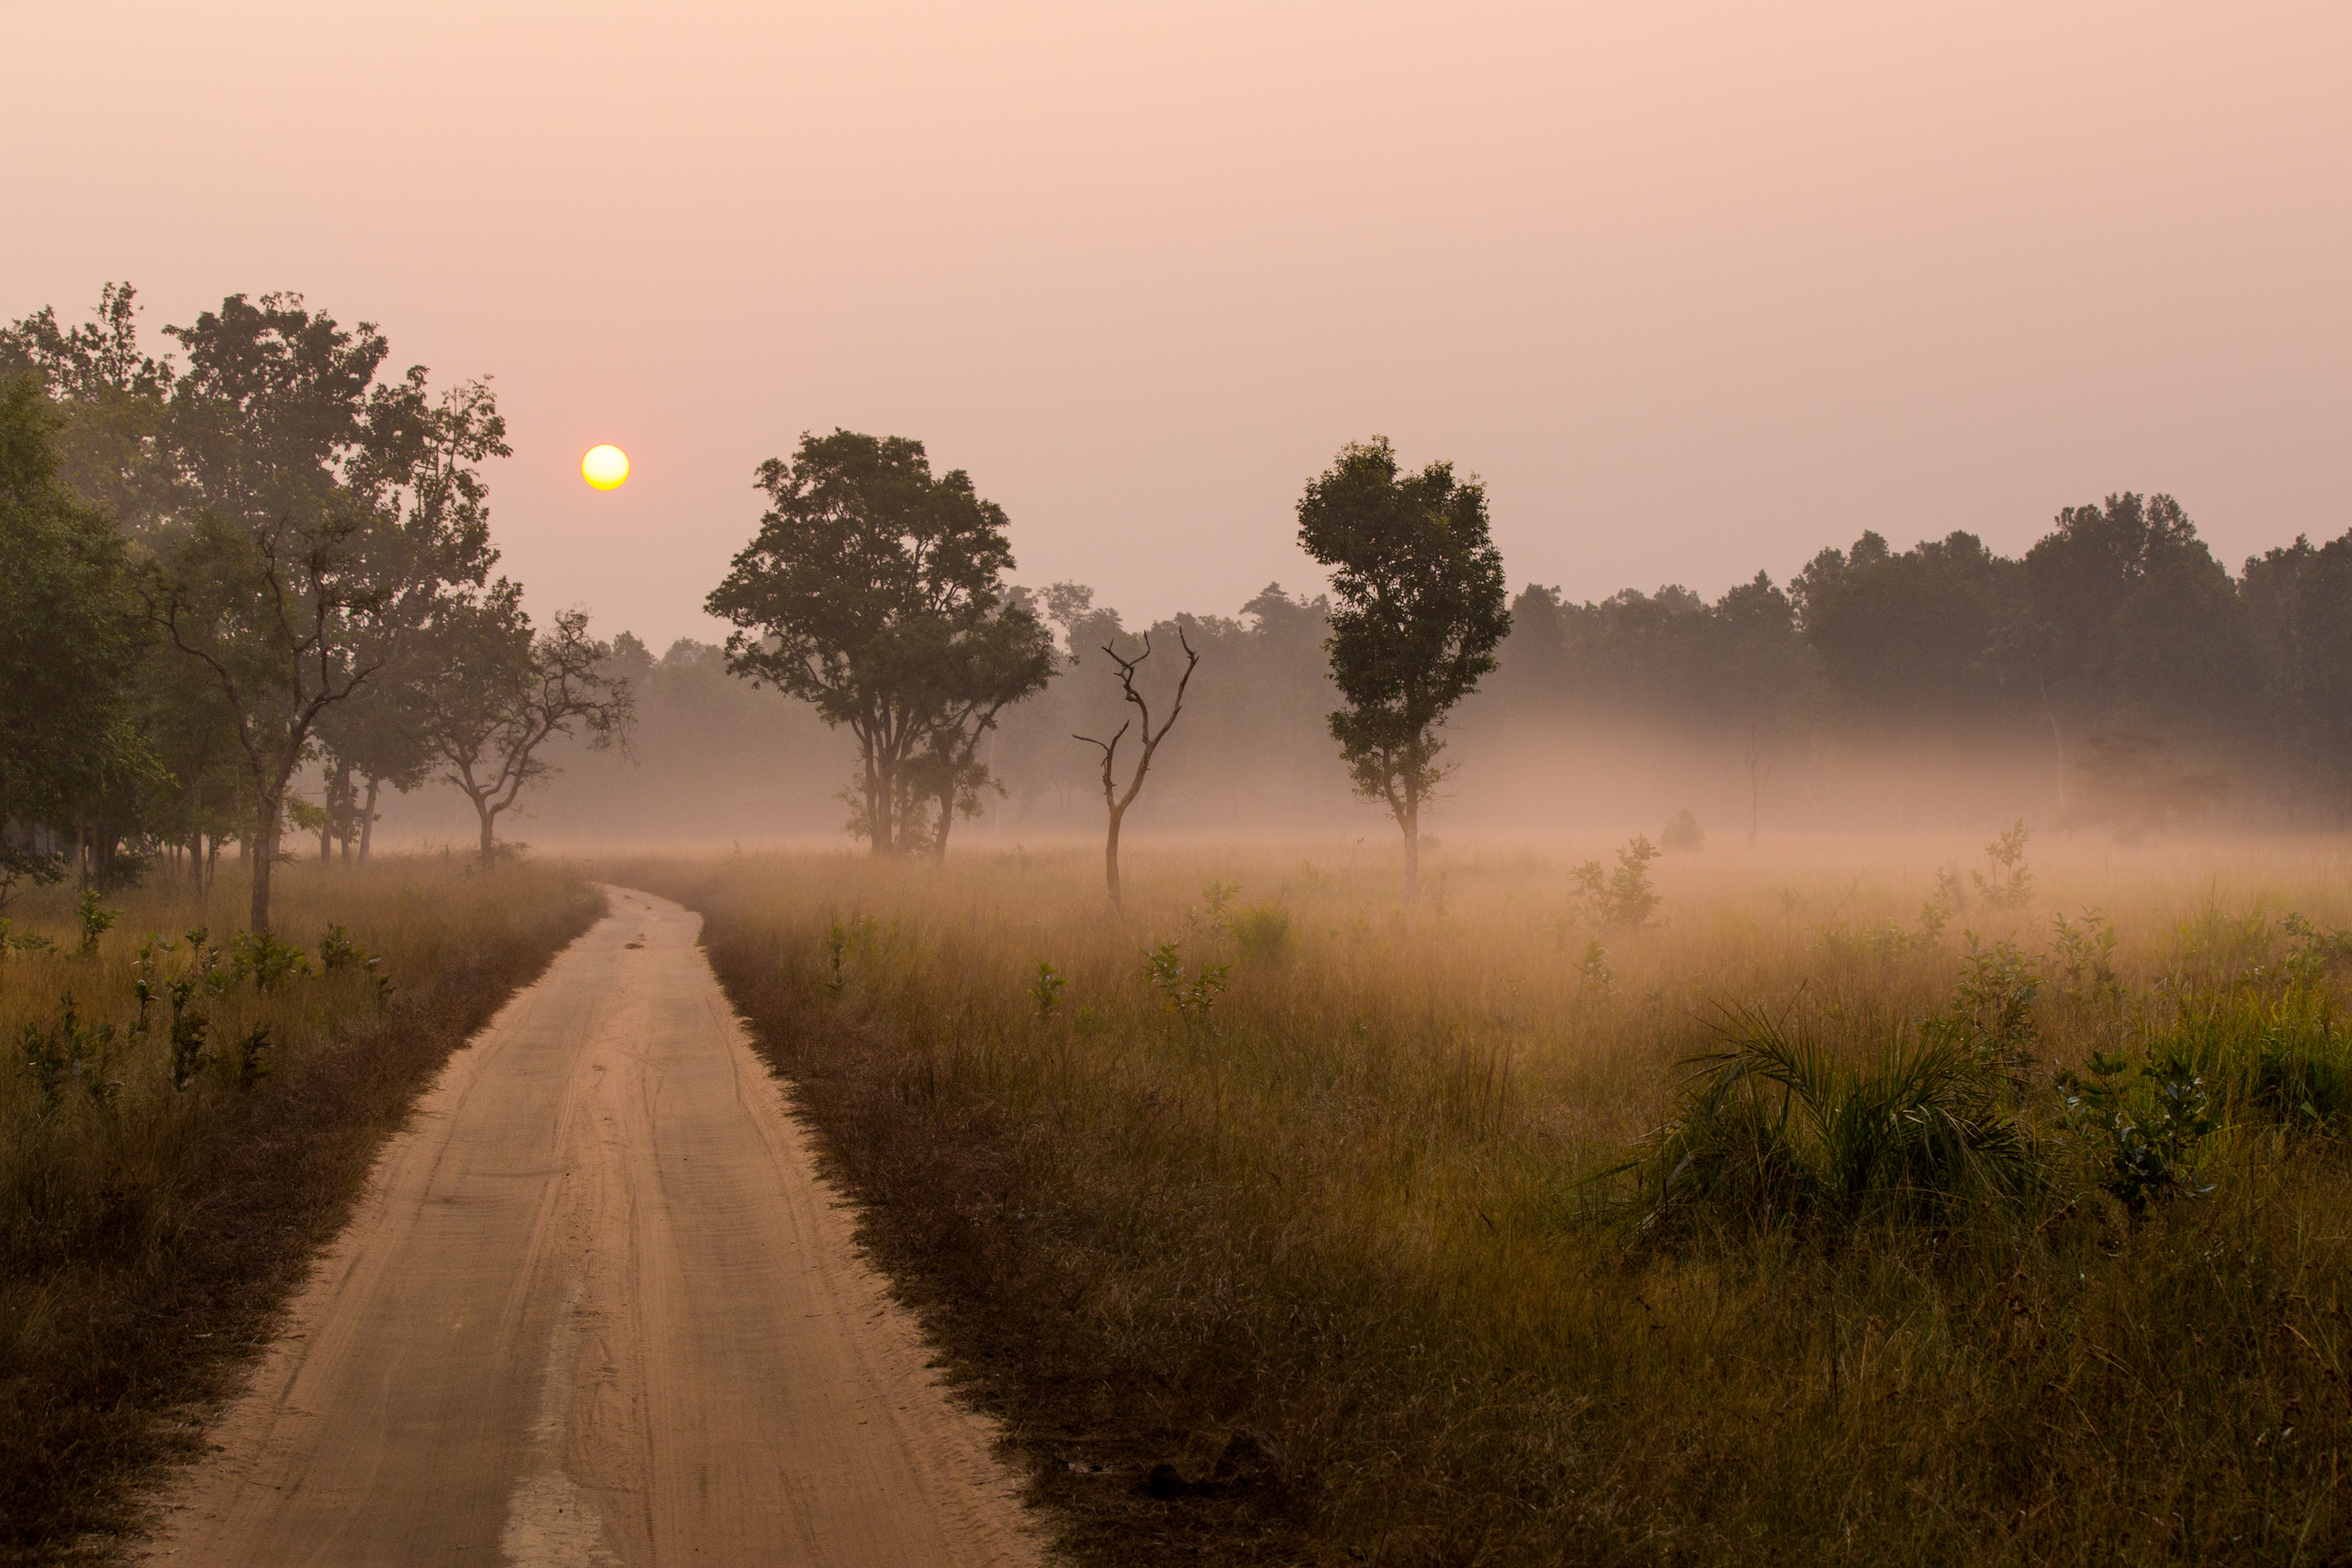 The sunrise and morning mists invites imagination. CLICK IMAGE for full screen.